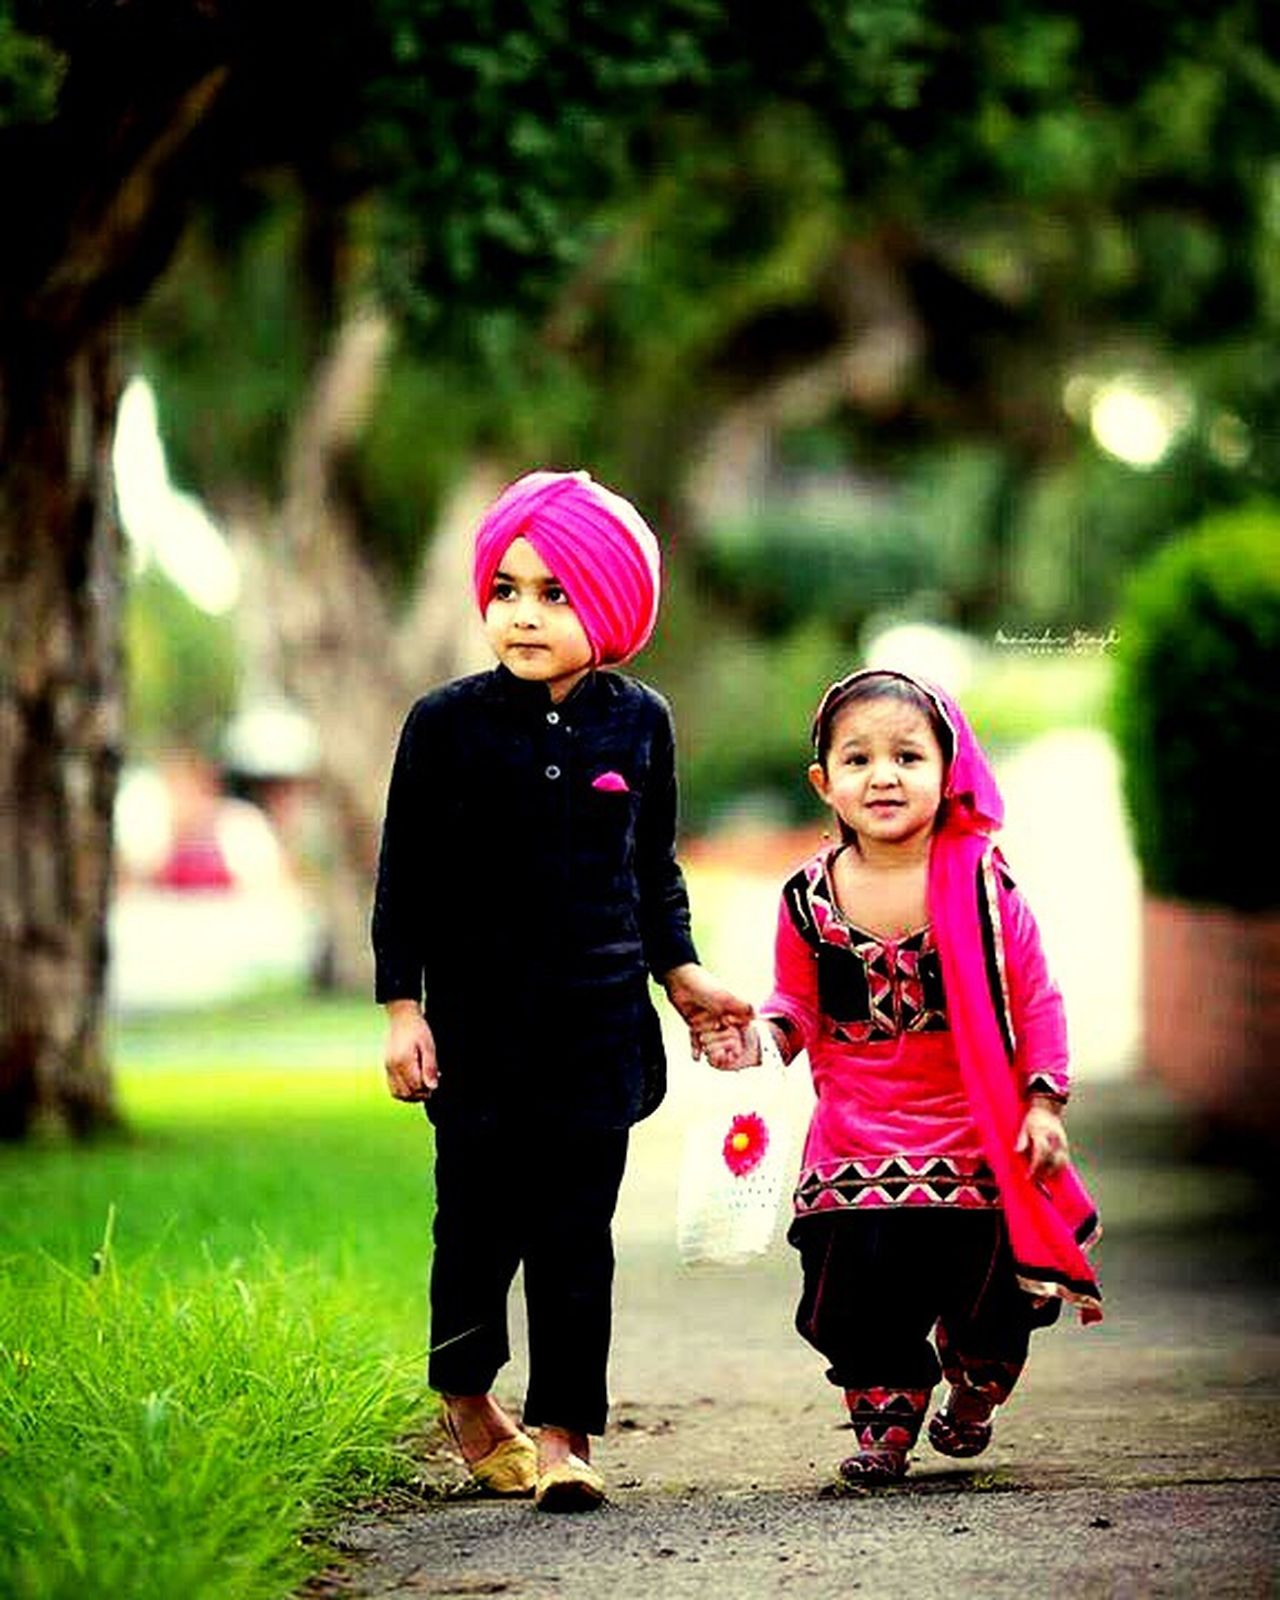 TakeoverContrast Togetherness Focus On Foreground Full Length Bonding Portrait Leisure Activity Love Childhood Front View Casual Clothing Park - Man Made Space Day Outdoors Cute The Culture Of The Holidays Human Face Fun Punjabi Kids Turban Grass Punjabisuit Kurta KurtaPajama